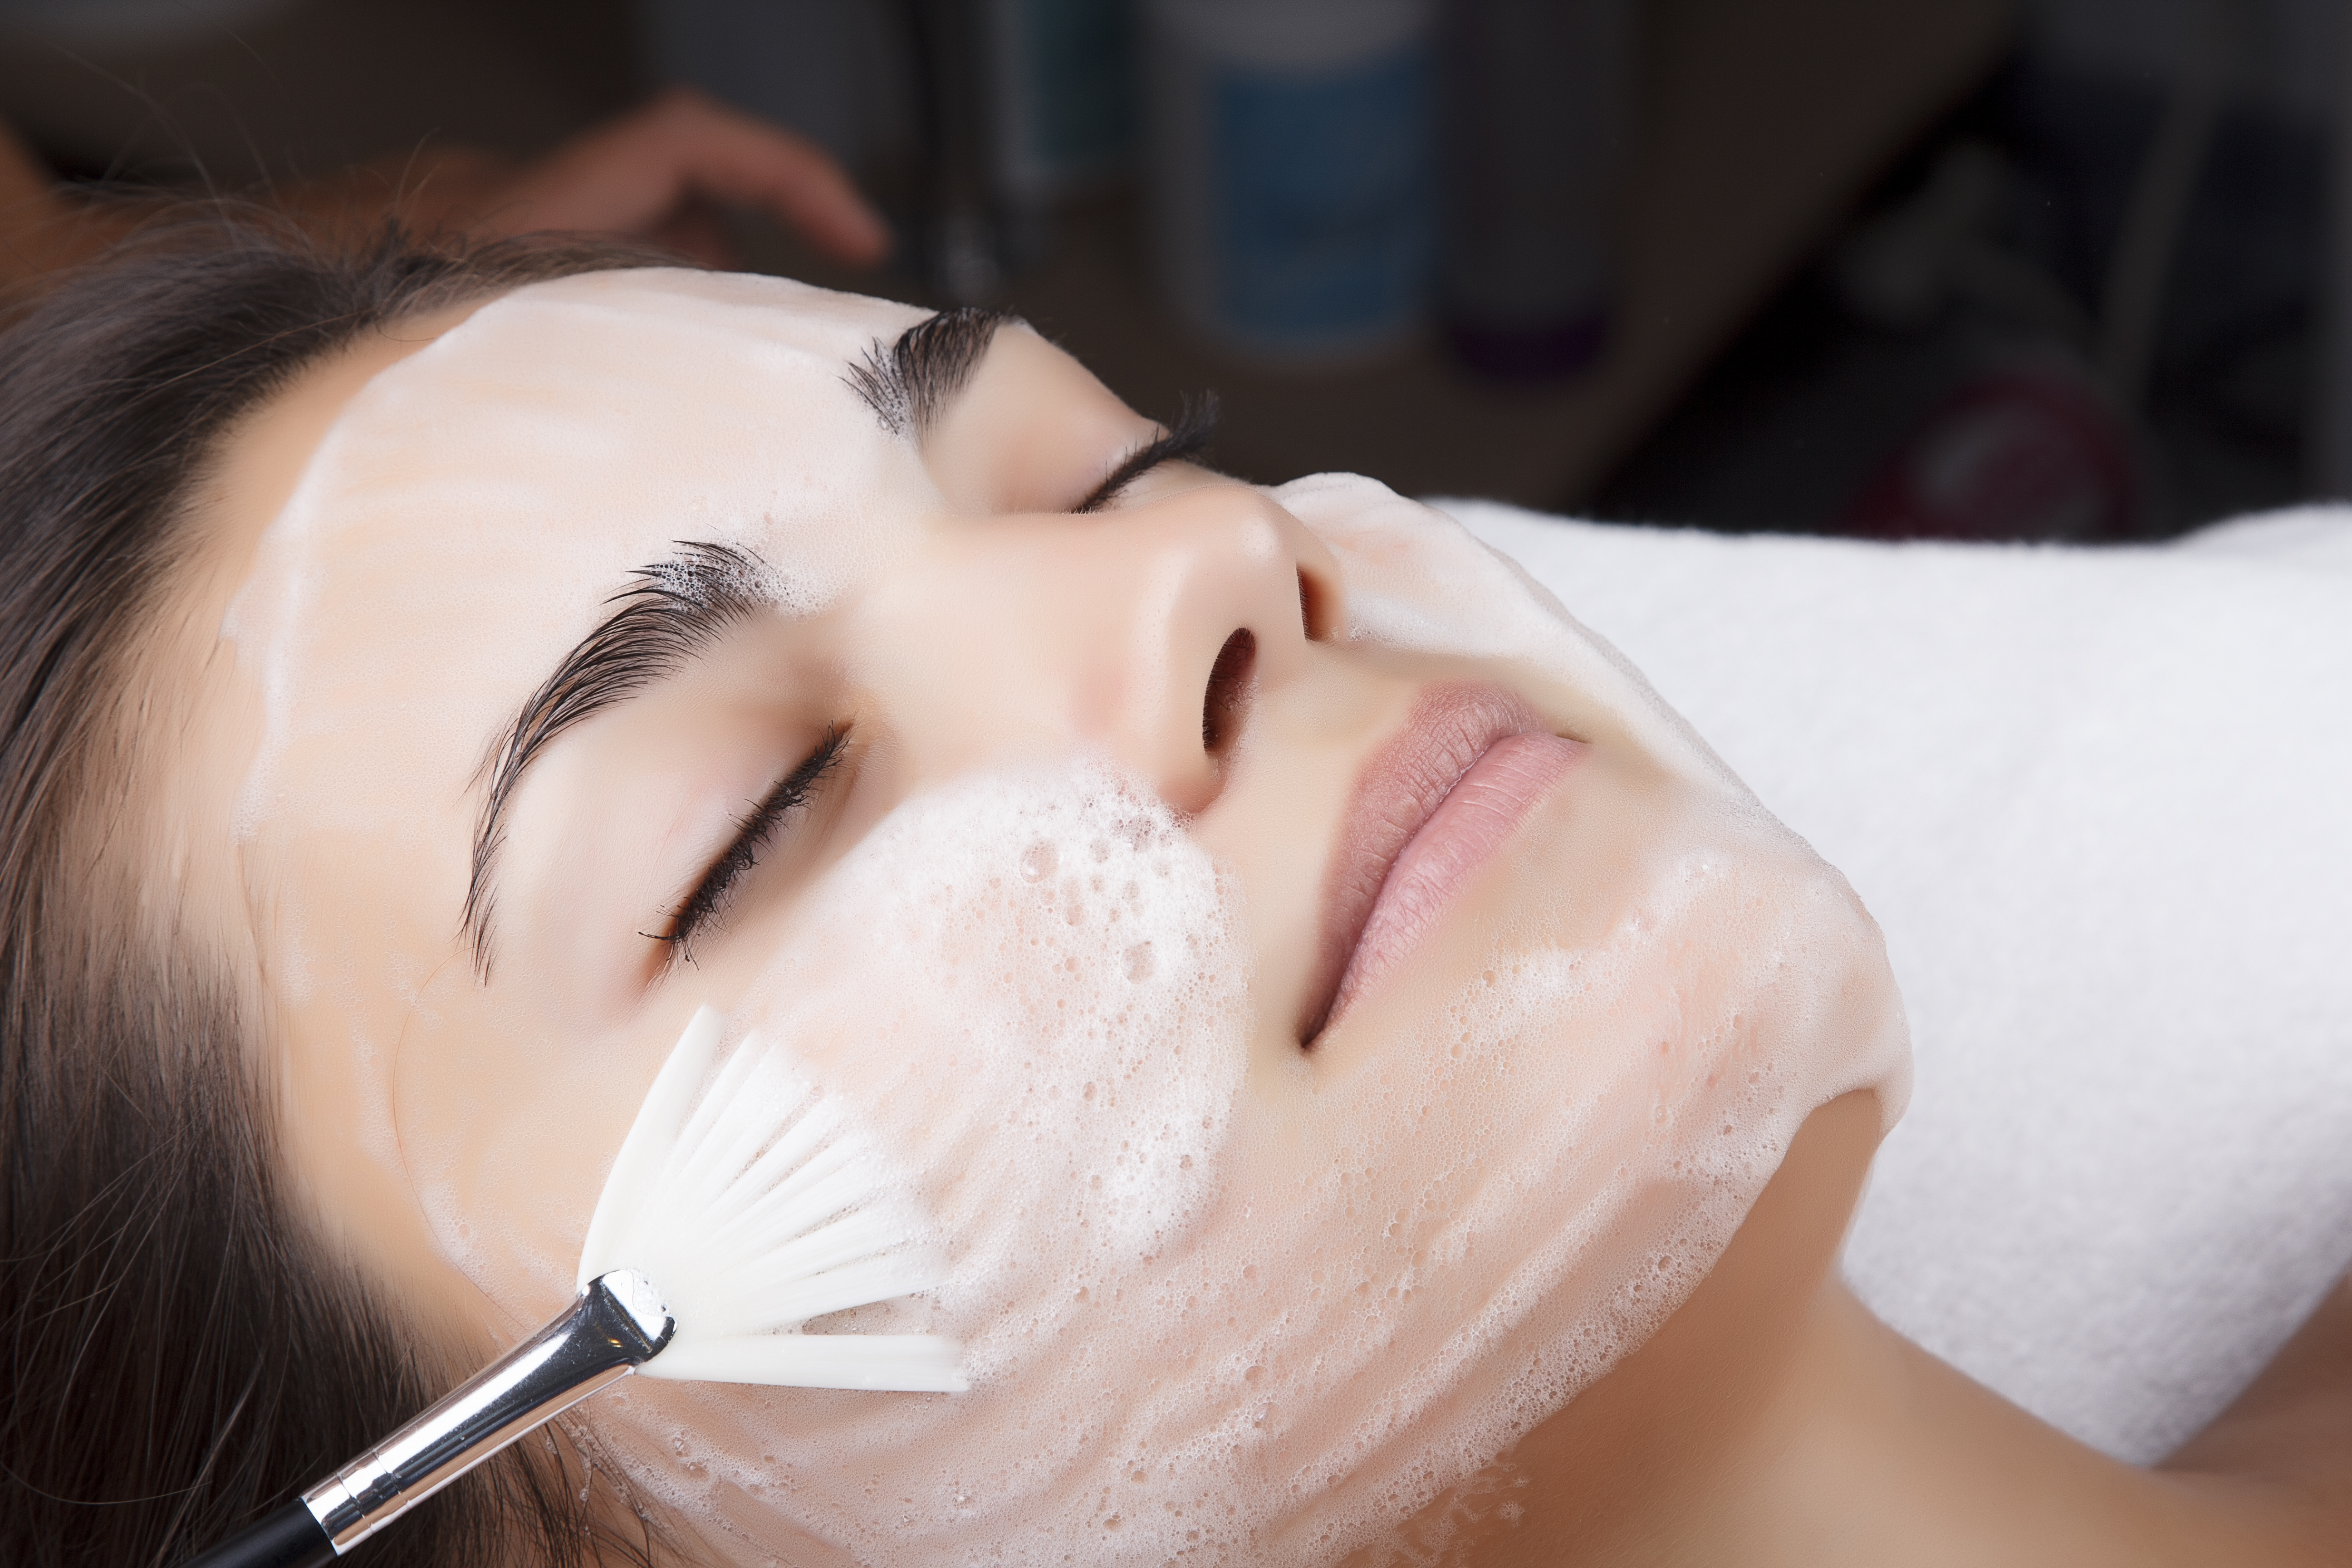 school-gril-skin-care-facial-cleansing-hot